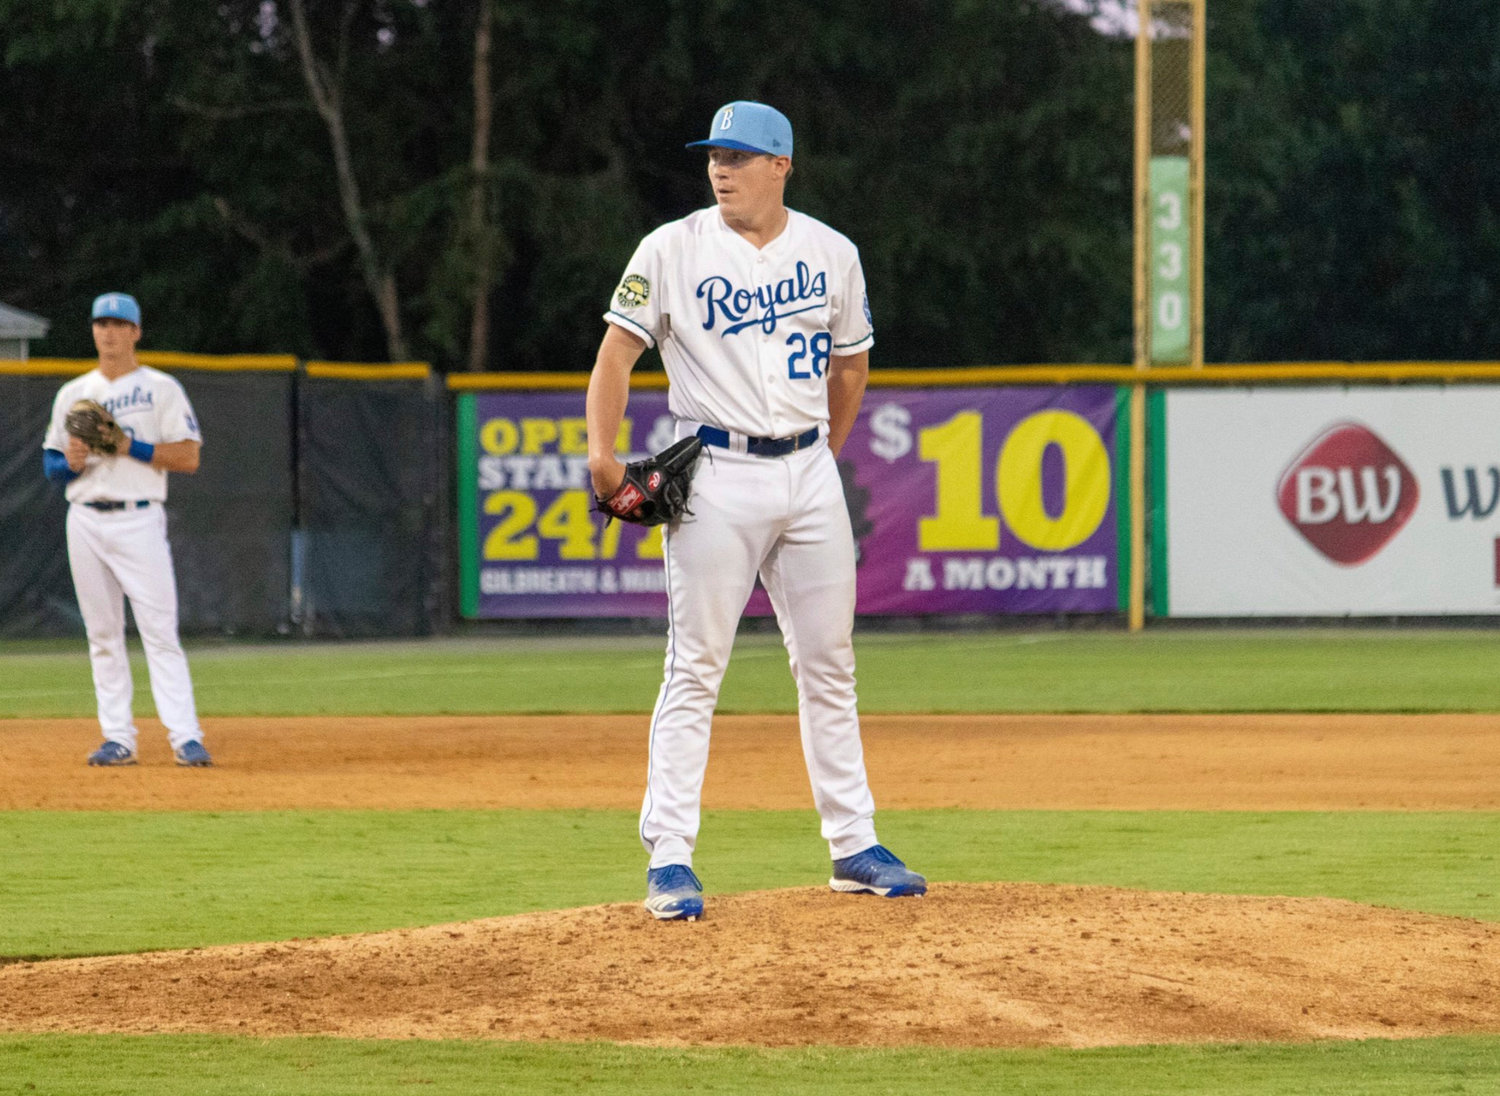 Cartersville High graduate Elliott Anderson kept up the phenomenal start to his professional career with two more scoreless appearances this past week, earning his second win and third save of the year. The left-hander has yet to allow a run in 10 outings, spanning 13 1/3 innings, for the Burlington Royals.